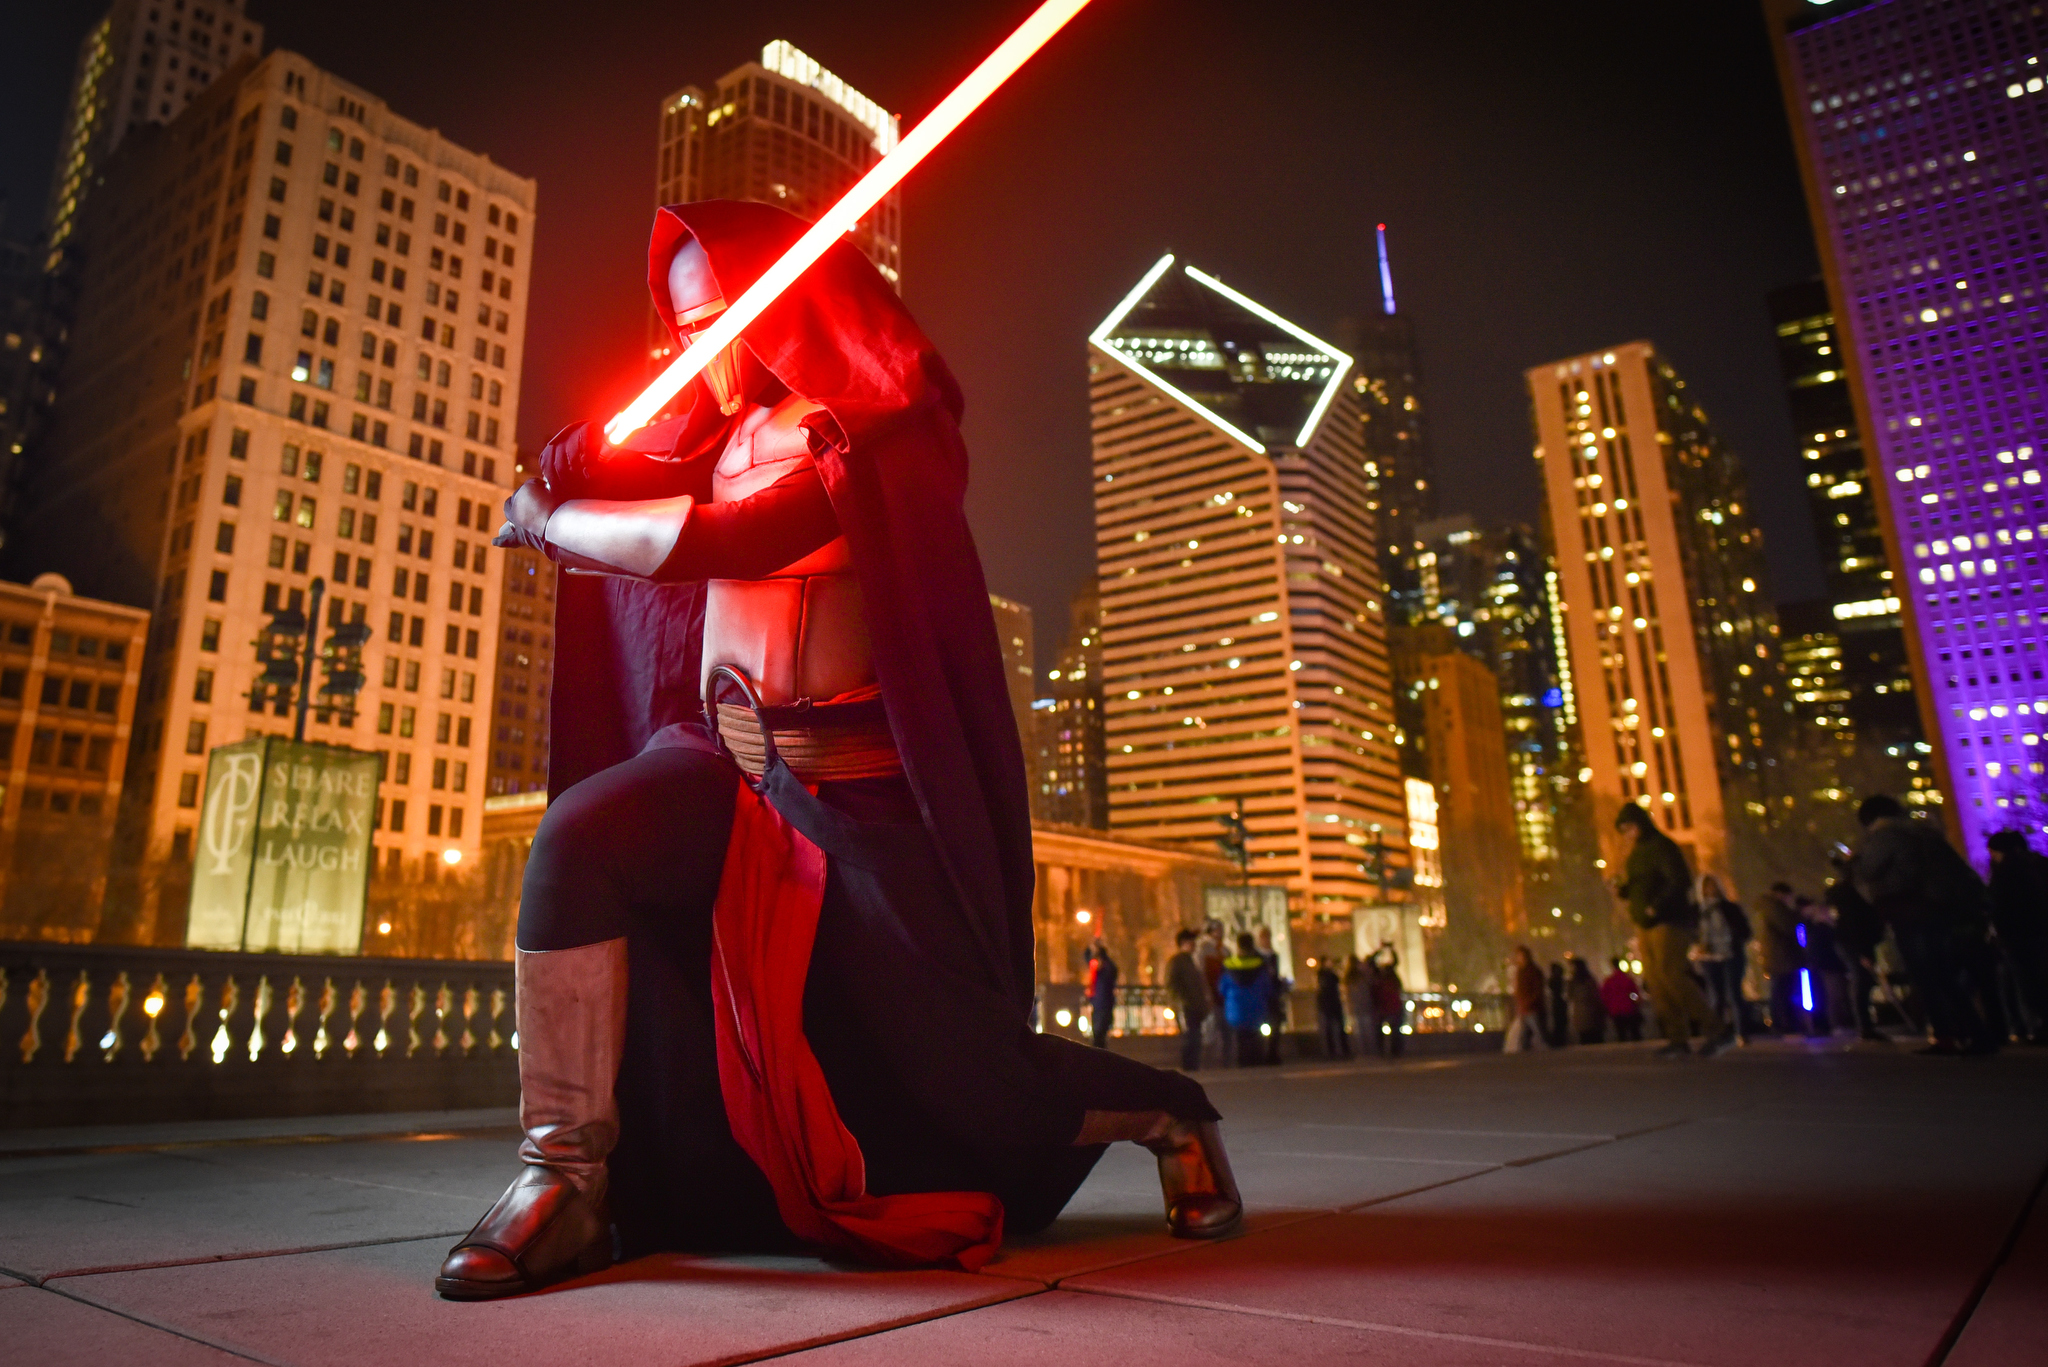 2019.04.14 - Star Wars Celebration Chicago 288875.JPG